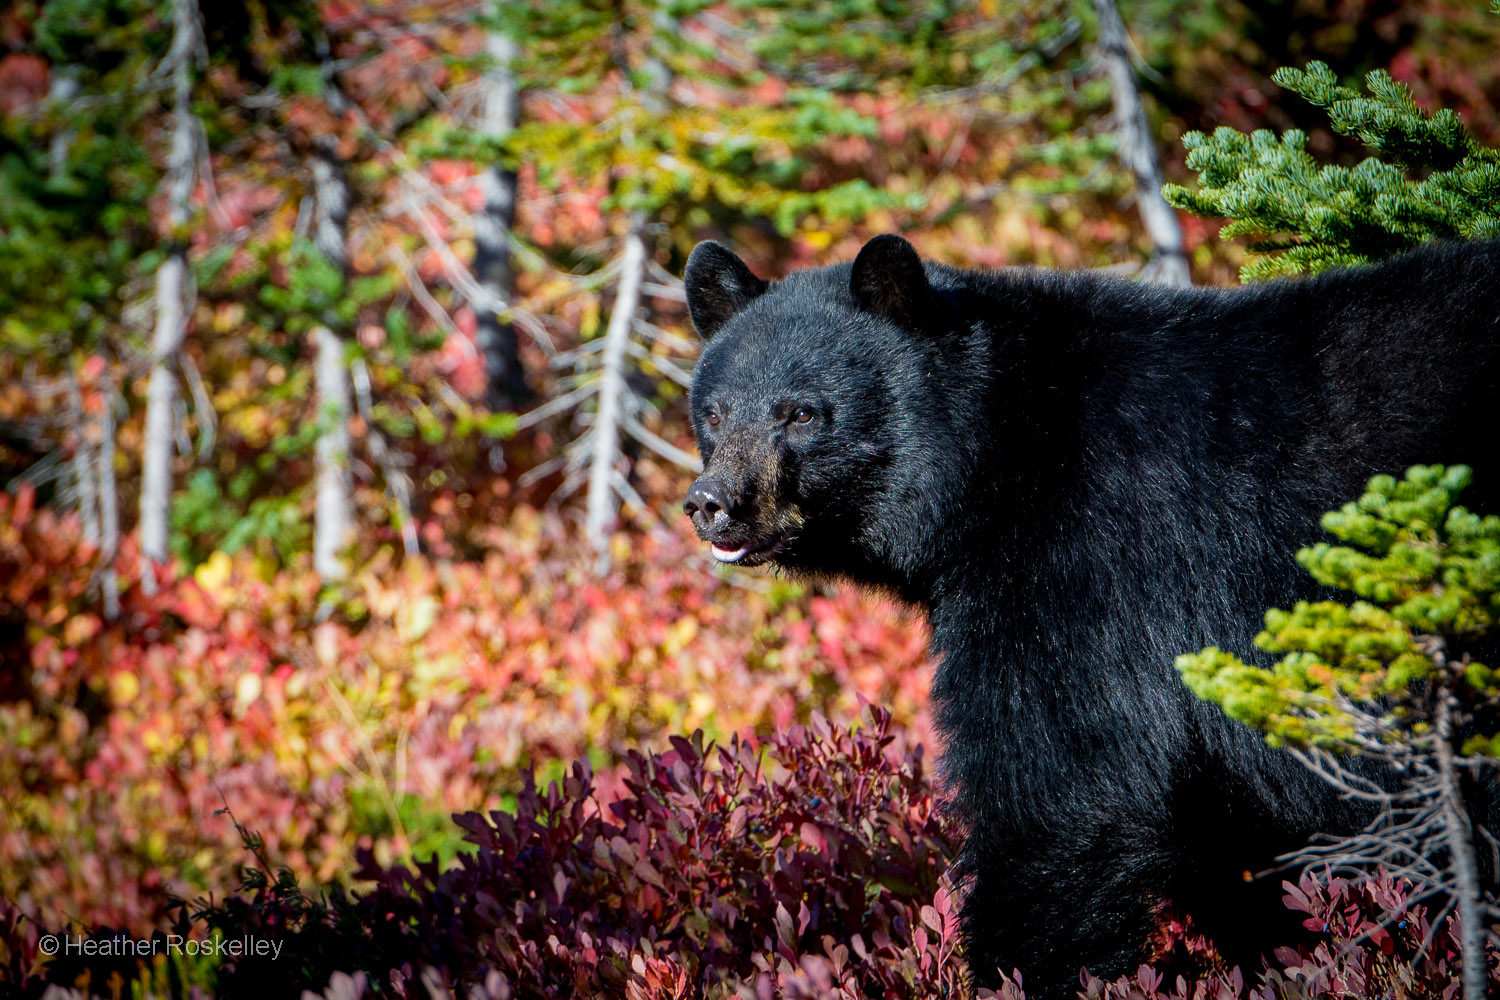 In preparation for hibernation, a Black Bear forages for food among blueberry bushes on the lower slopes of Mount Rainier.  If he lived on a wildlife refuge in Alaska, he could be killed in his den while he slept.